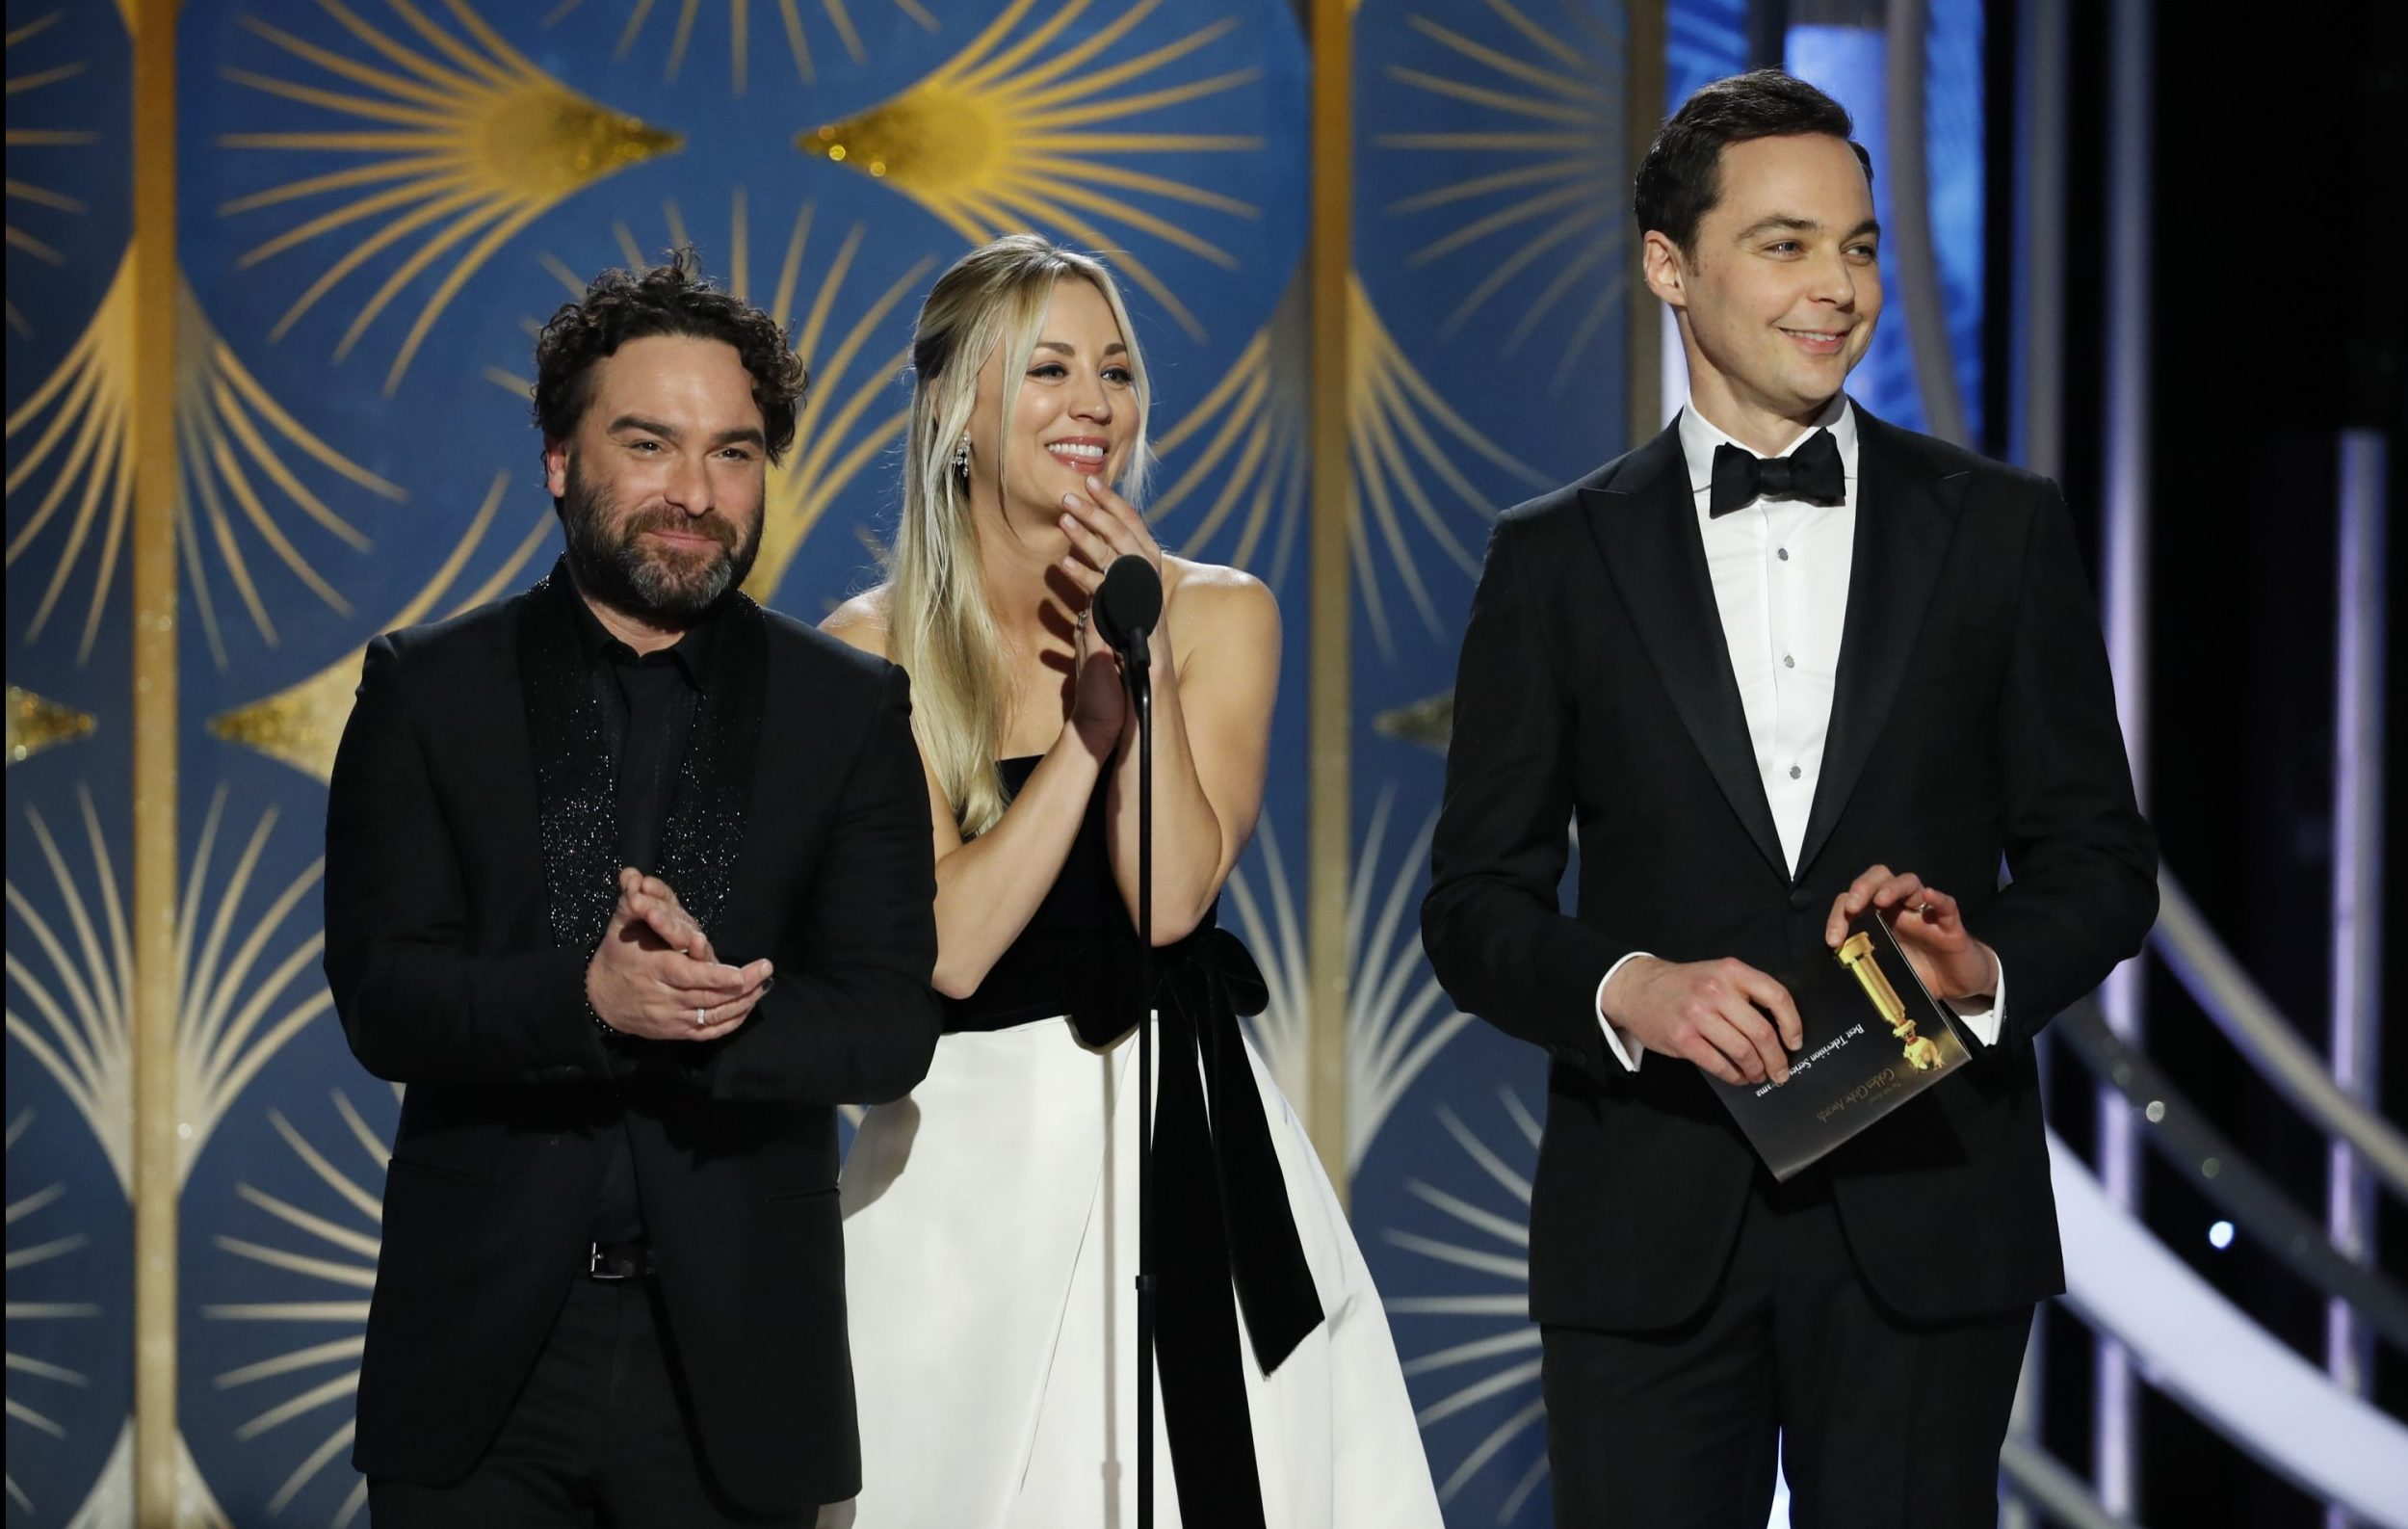 Golden Globes 2019: Big Bang Theory's Kaley Cuoco, Johnny Galecki and Jim Parsons get emotional about show's end